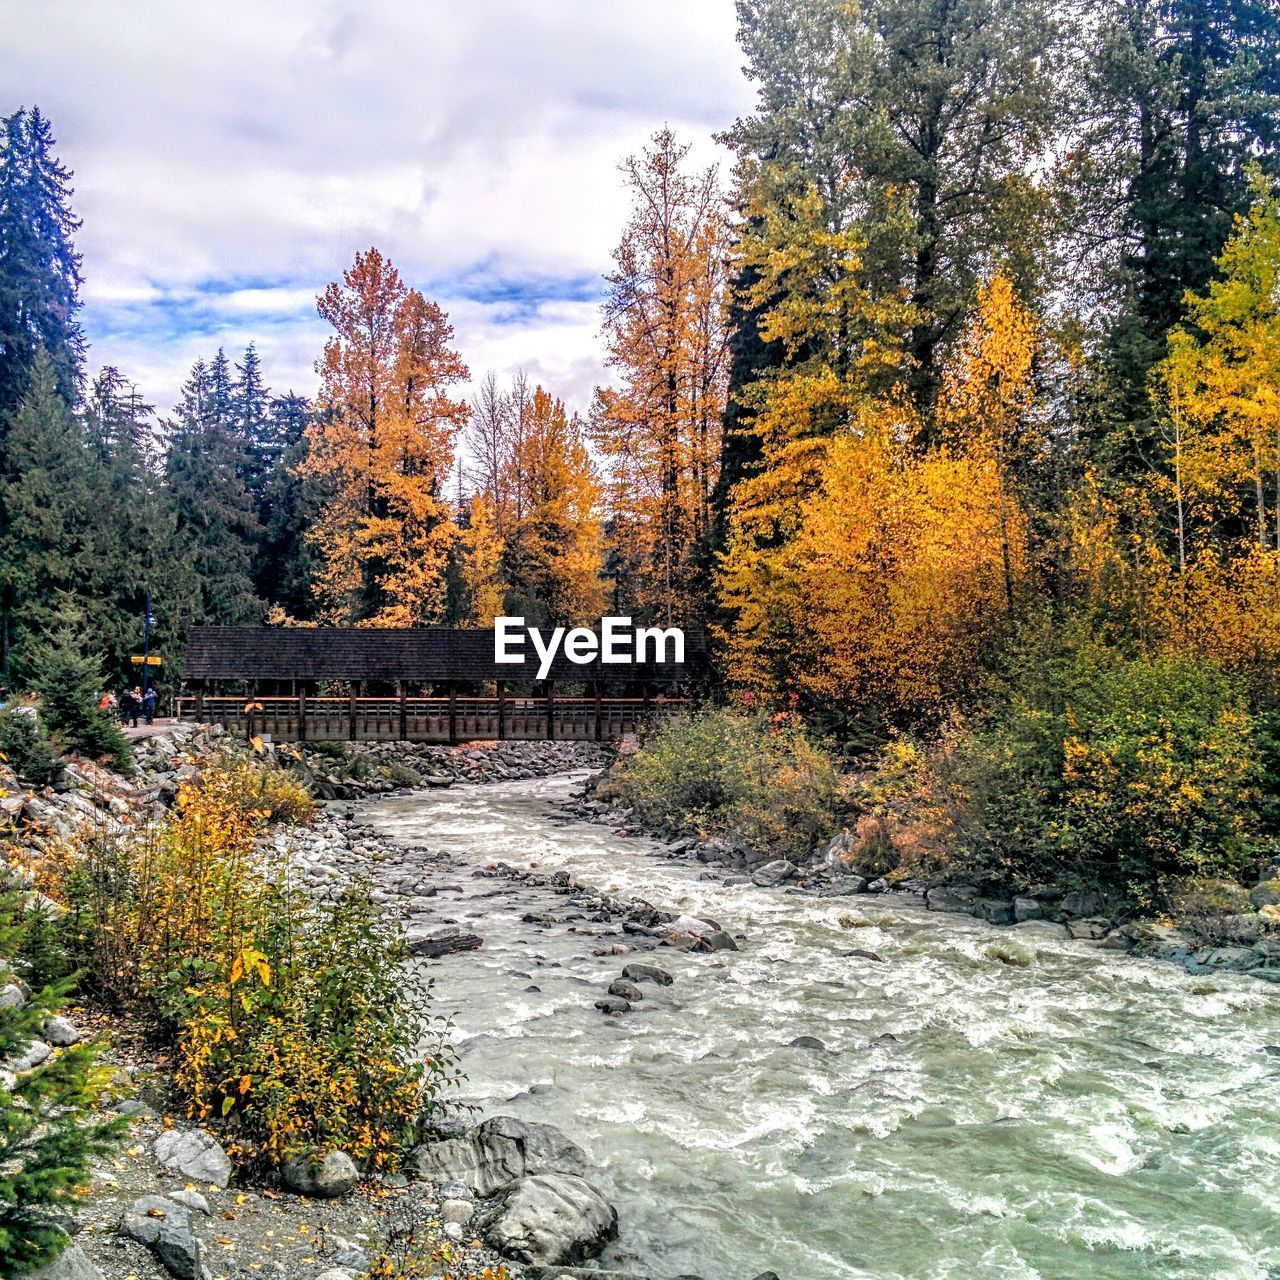 River Flowing Amidst Autumn Trees